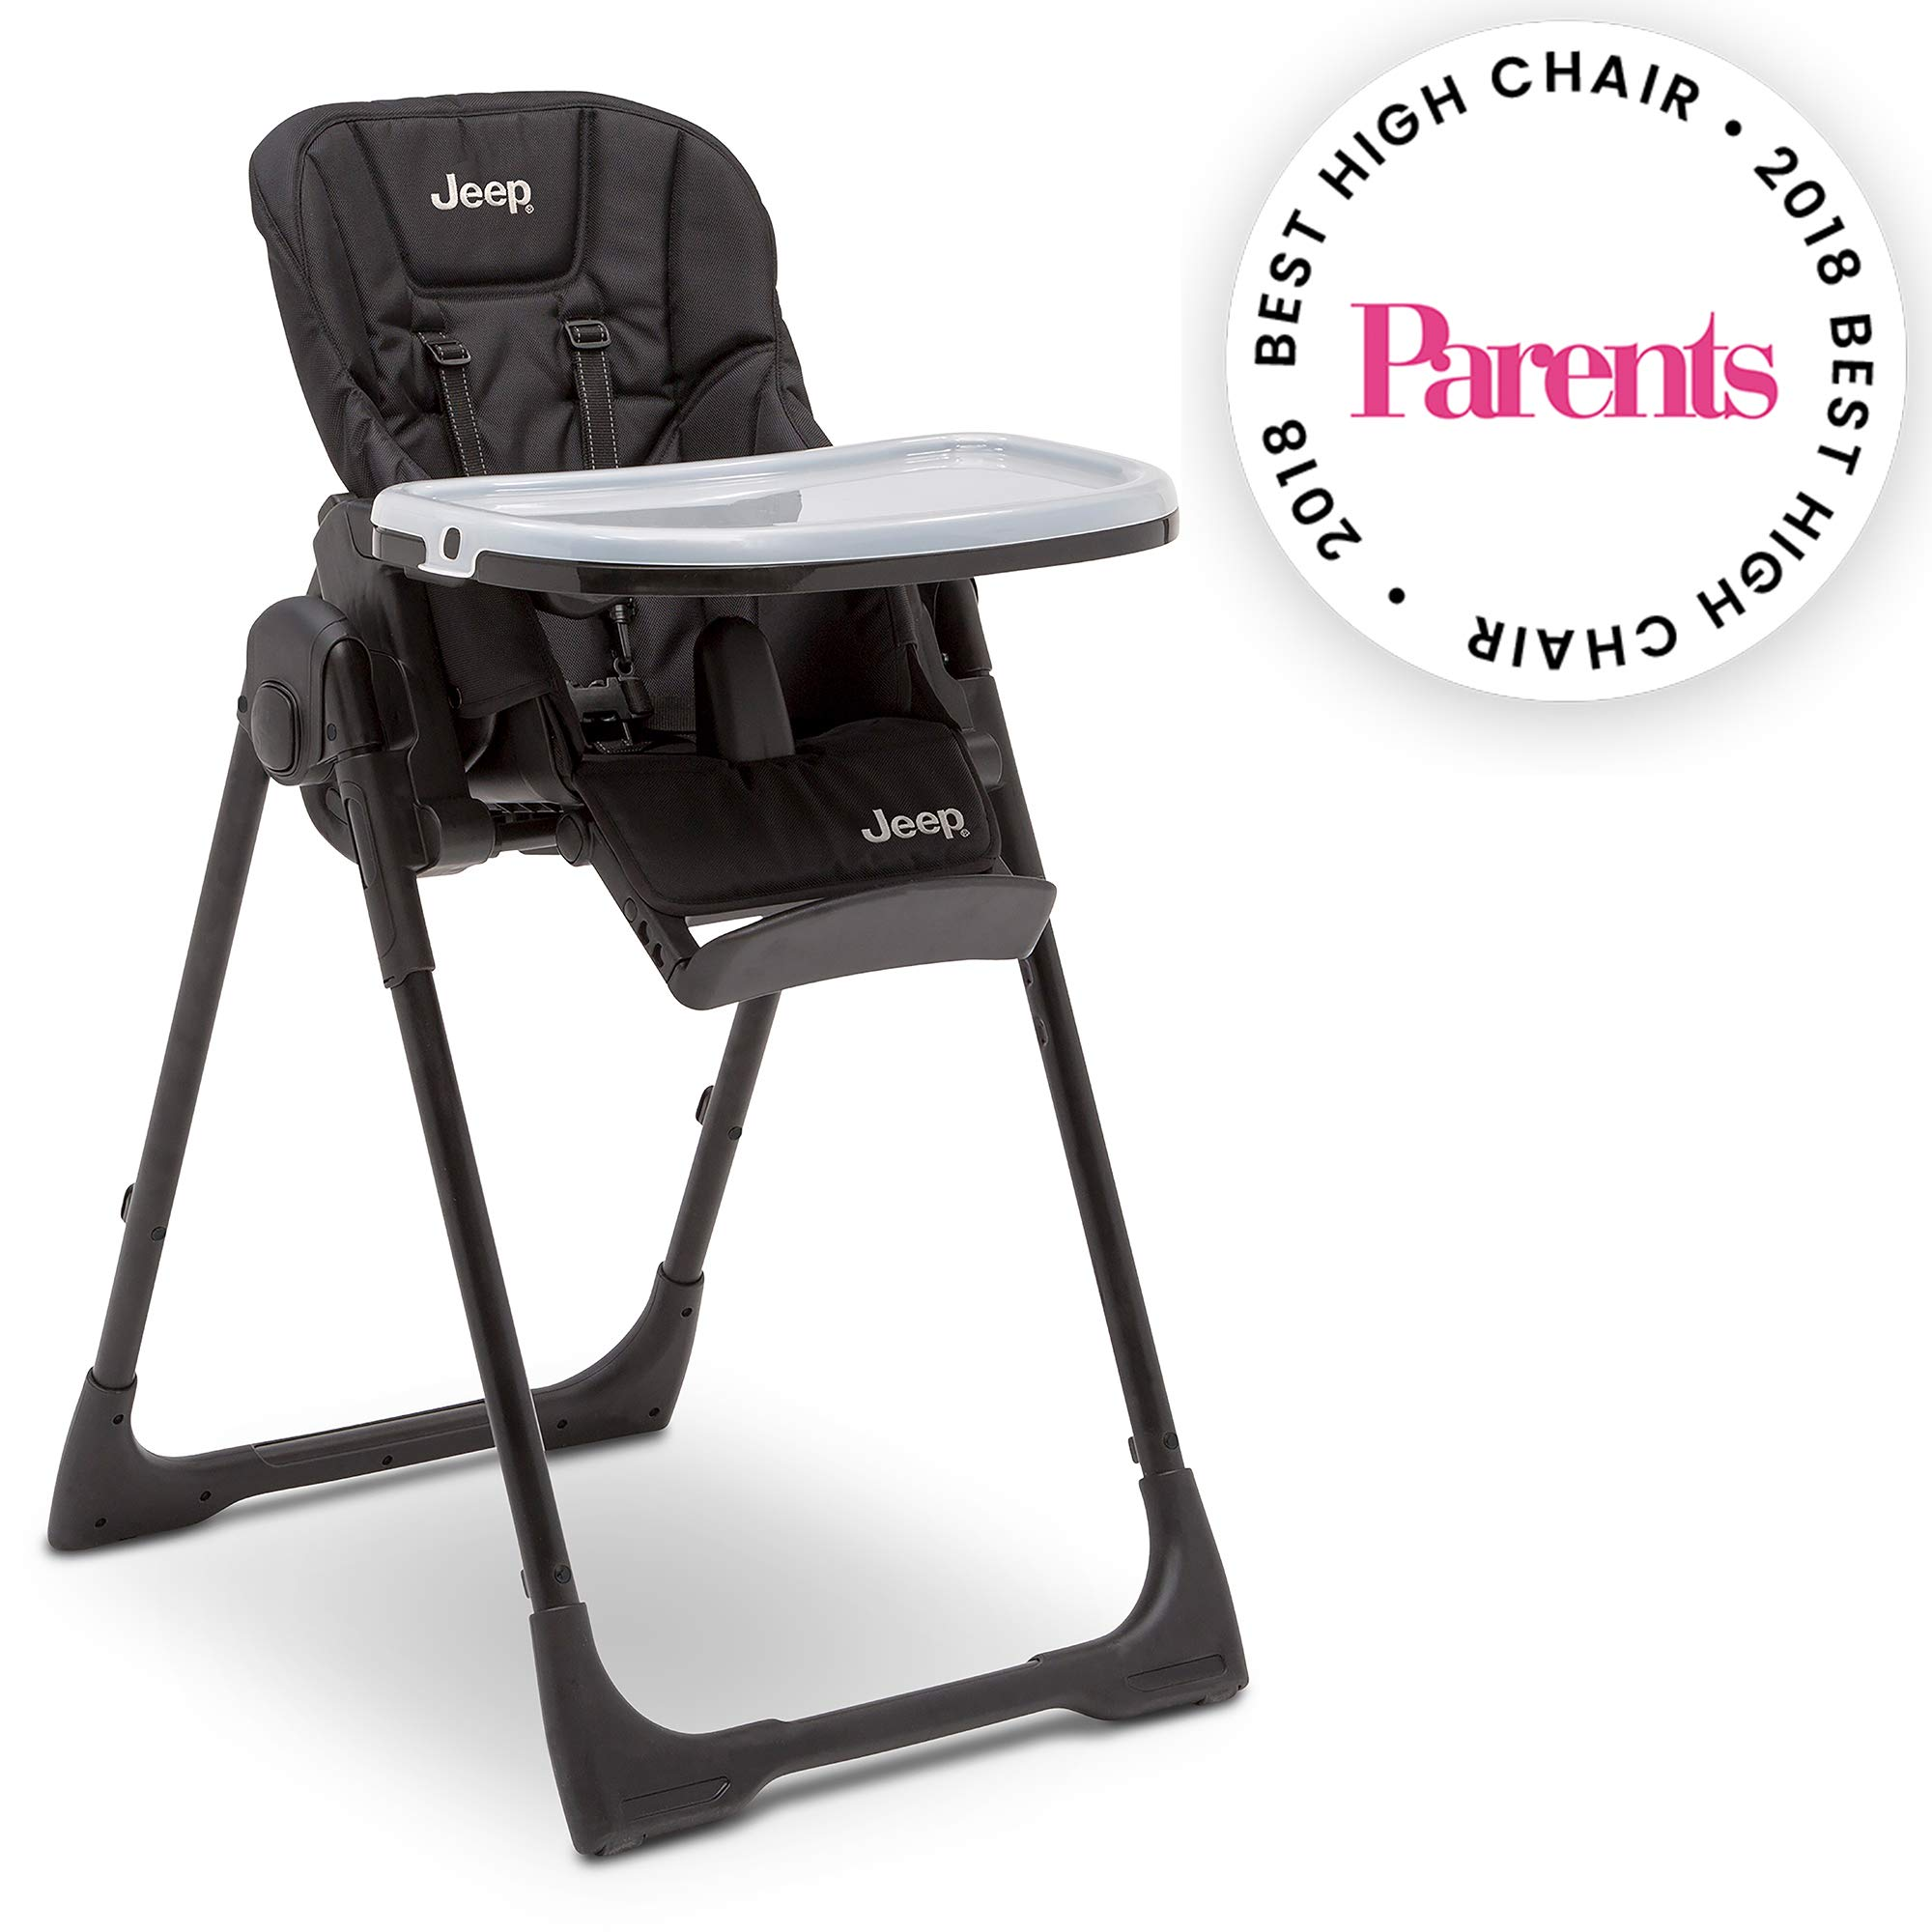 Jeep Classic Convertible High Chair for Babies and Toddlers, Midnight Black by Jeep